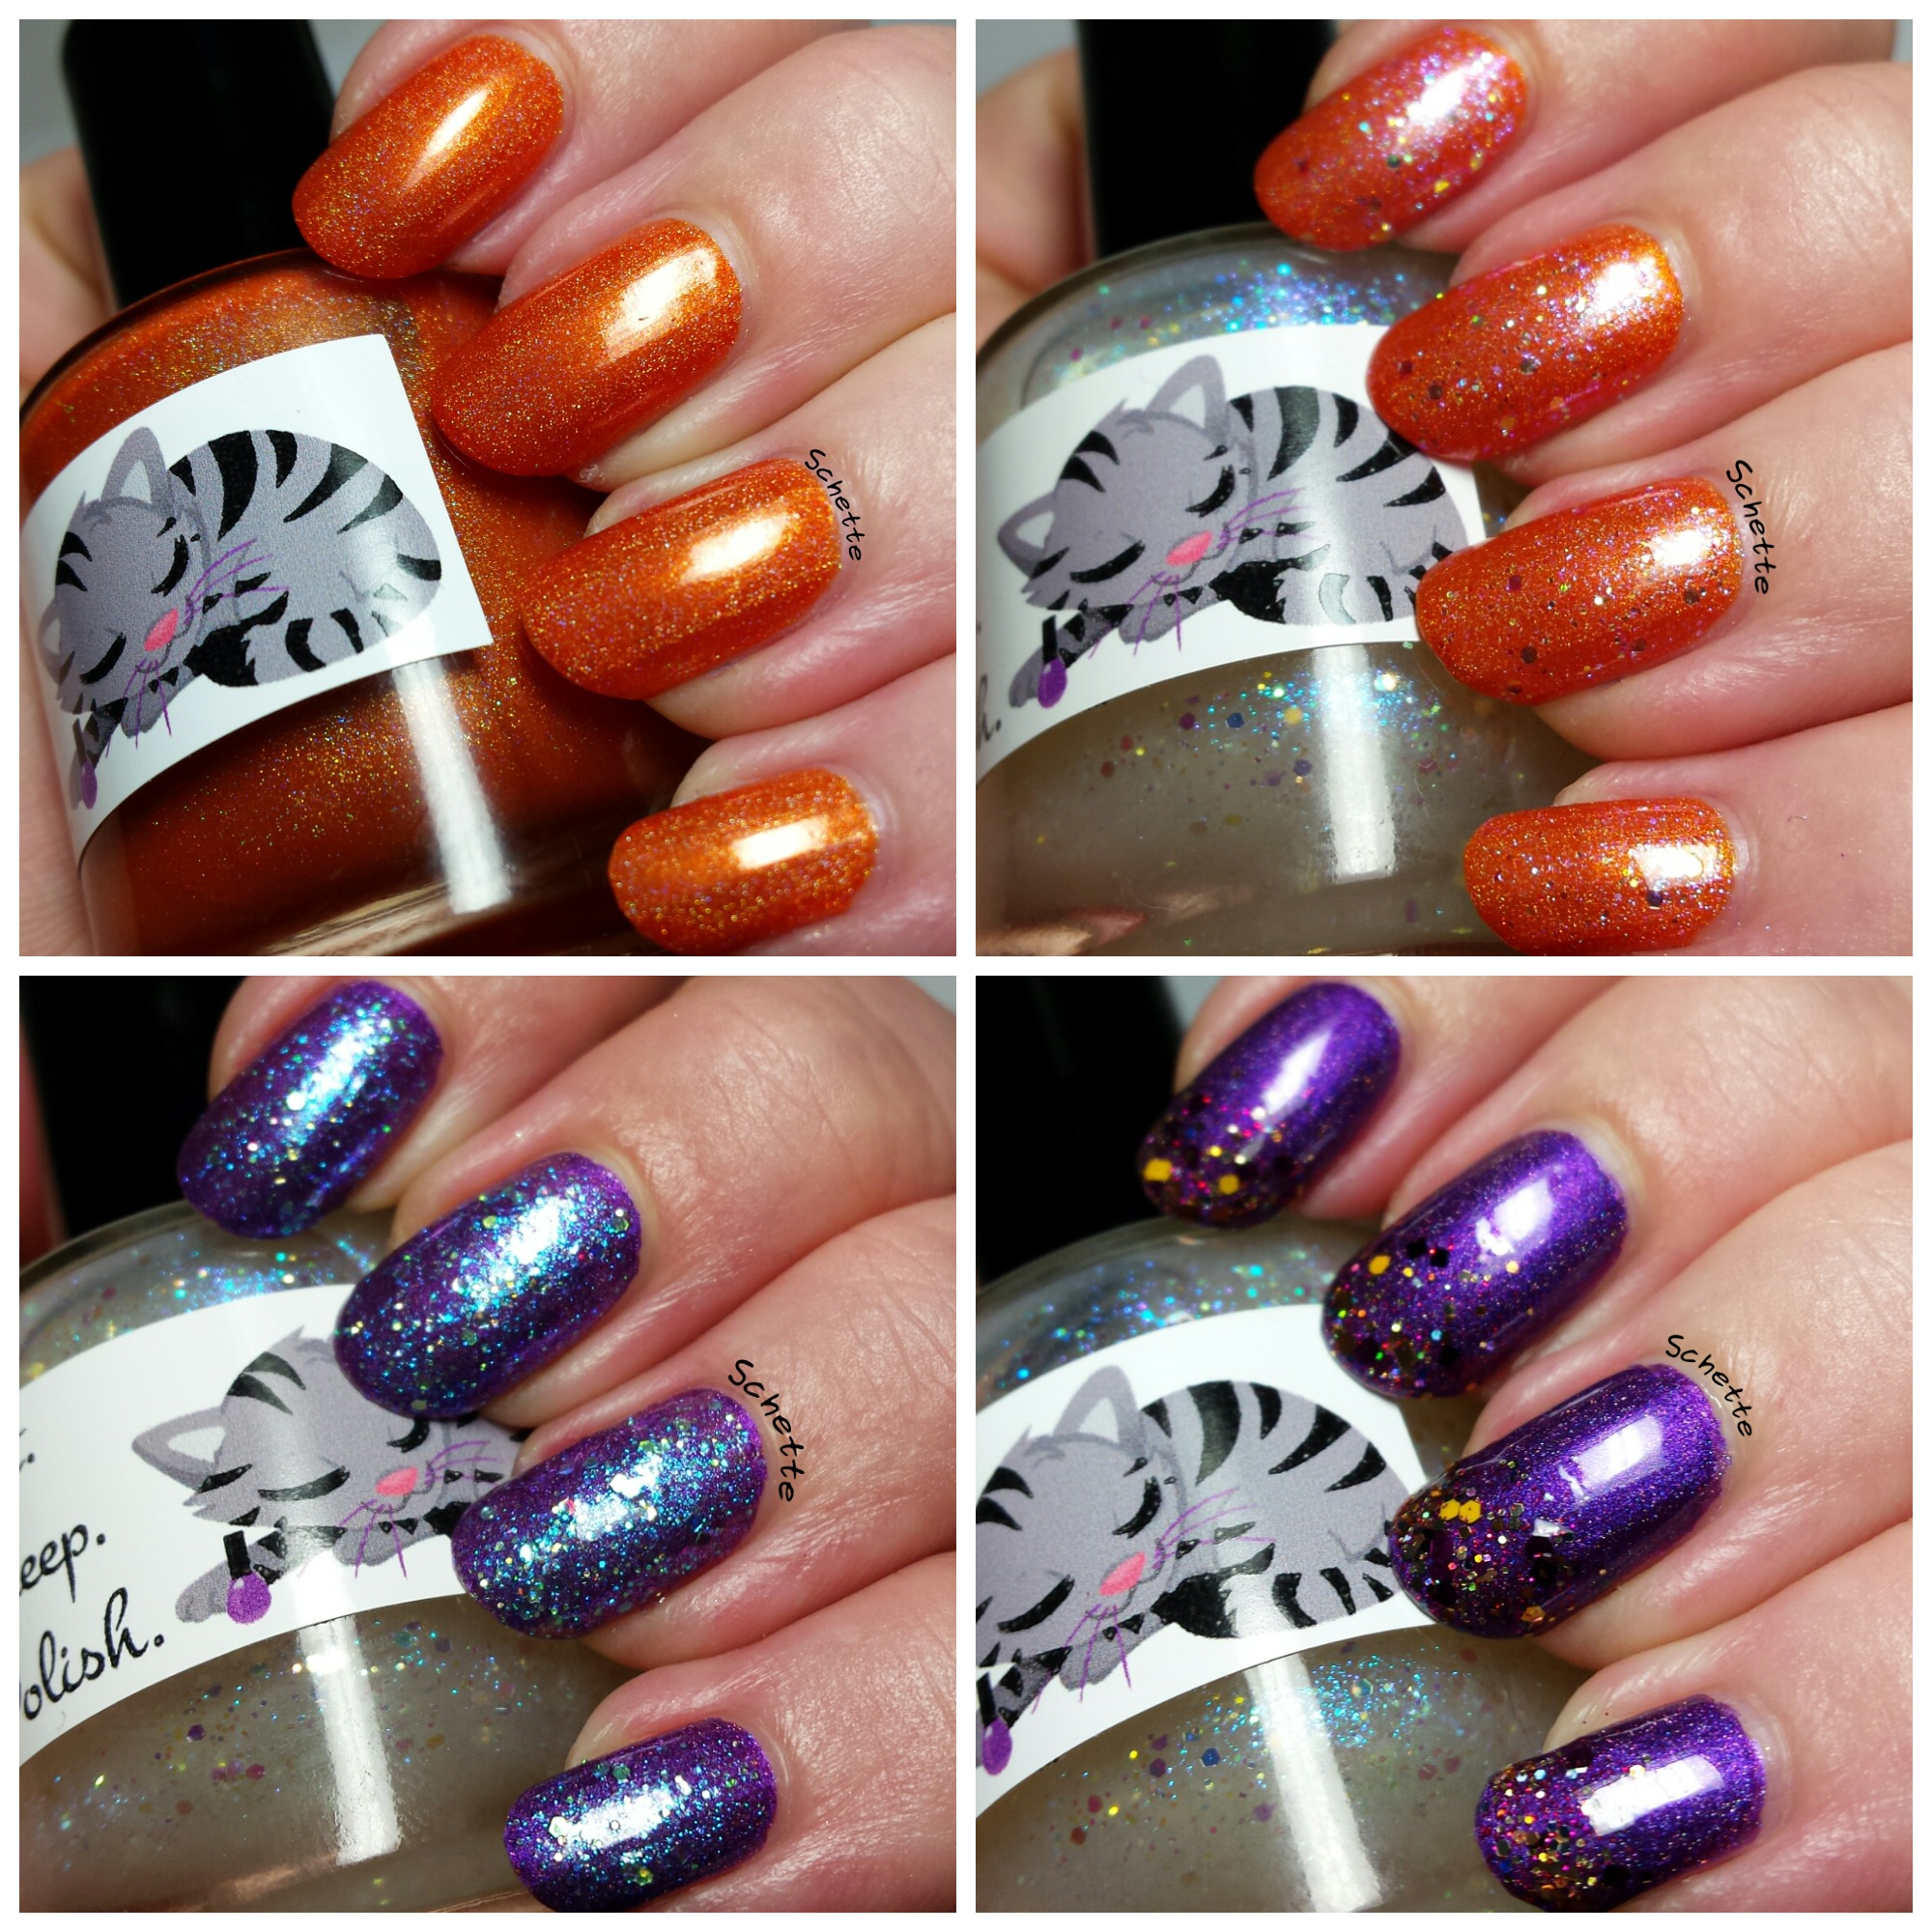 Les Vernis Eat Sleep Polish Rusty Spoon, Salad Finger et Imagination